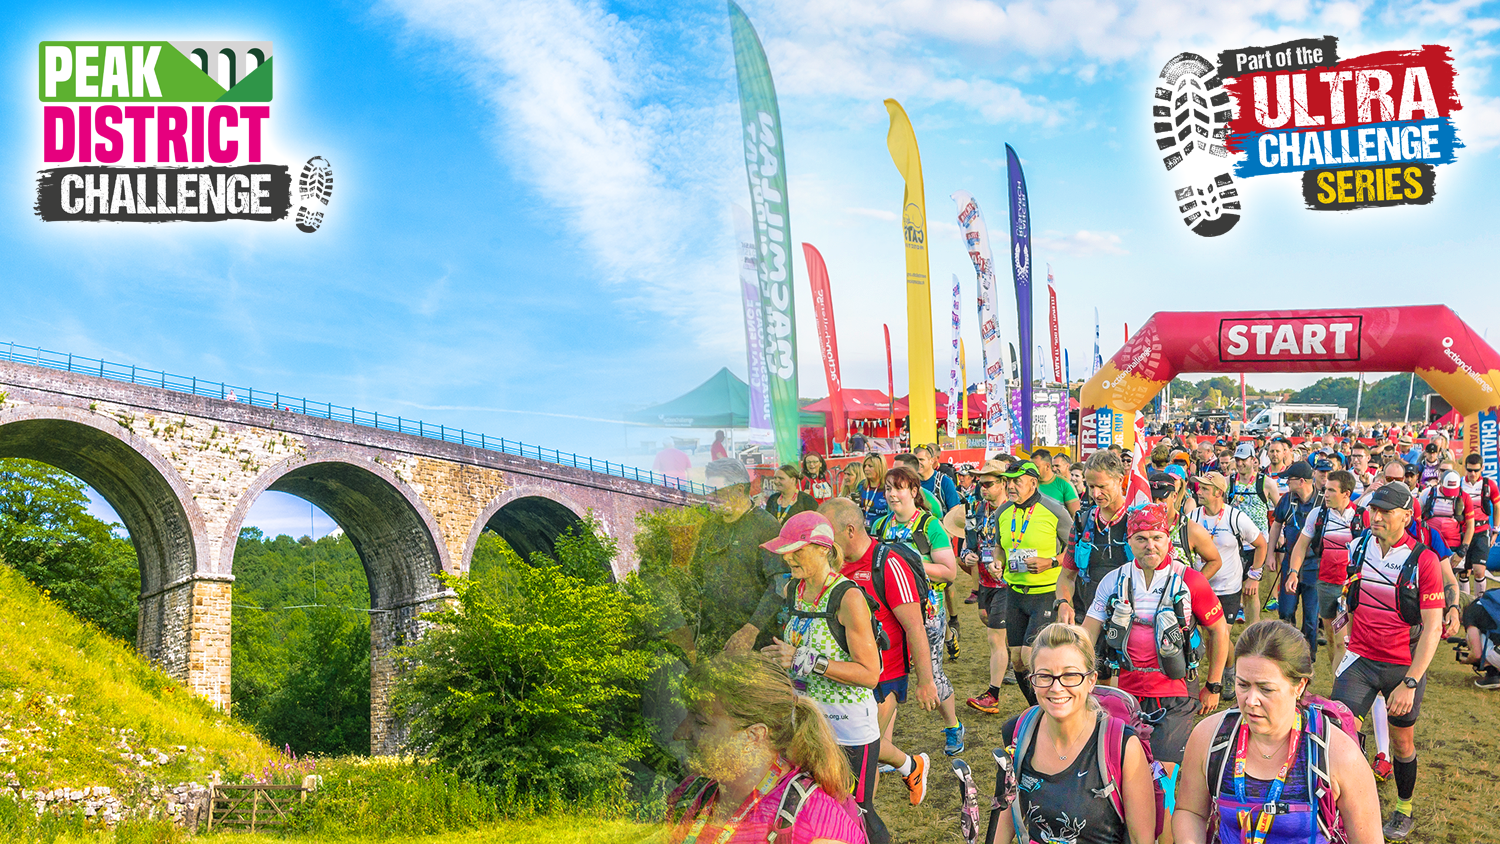 Peak District Ultra Challenge 2020